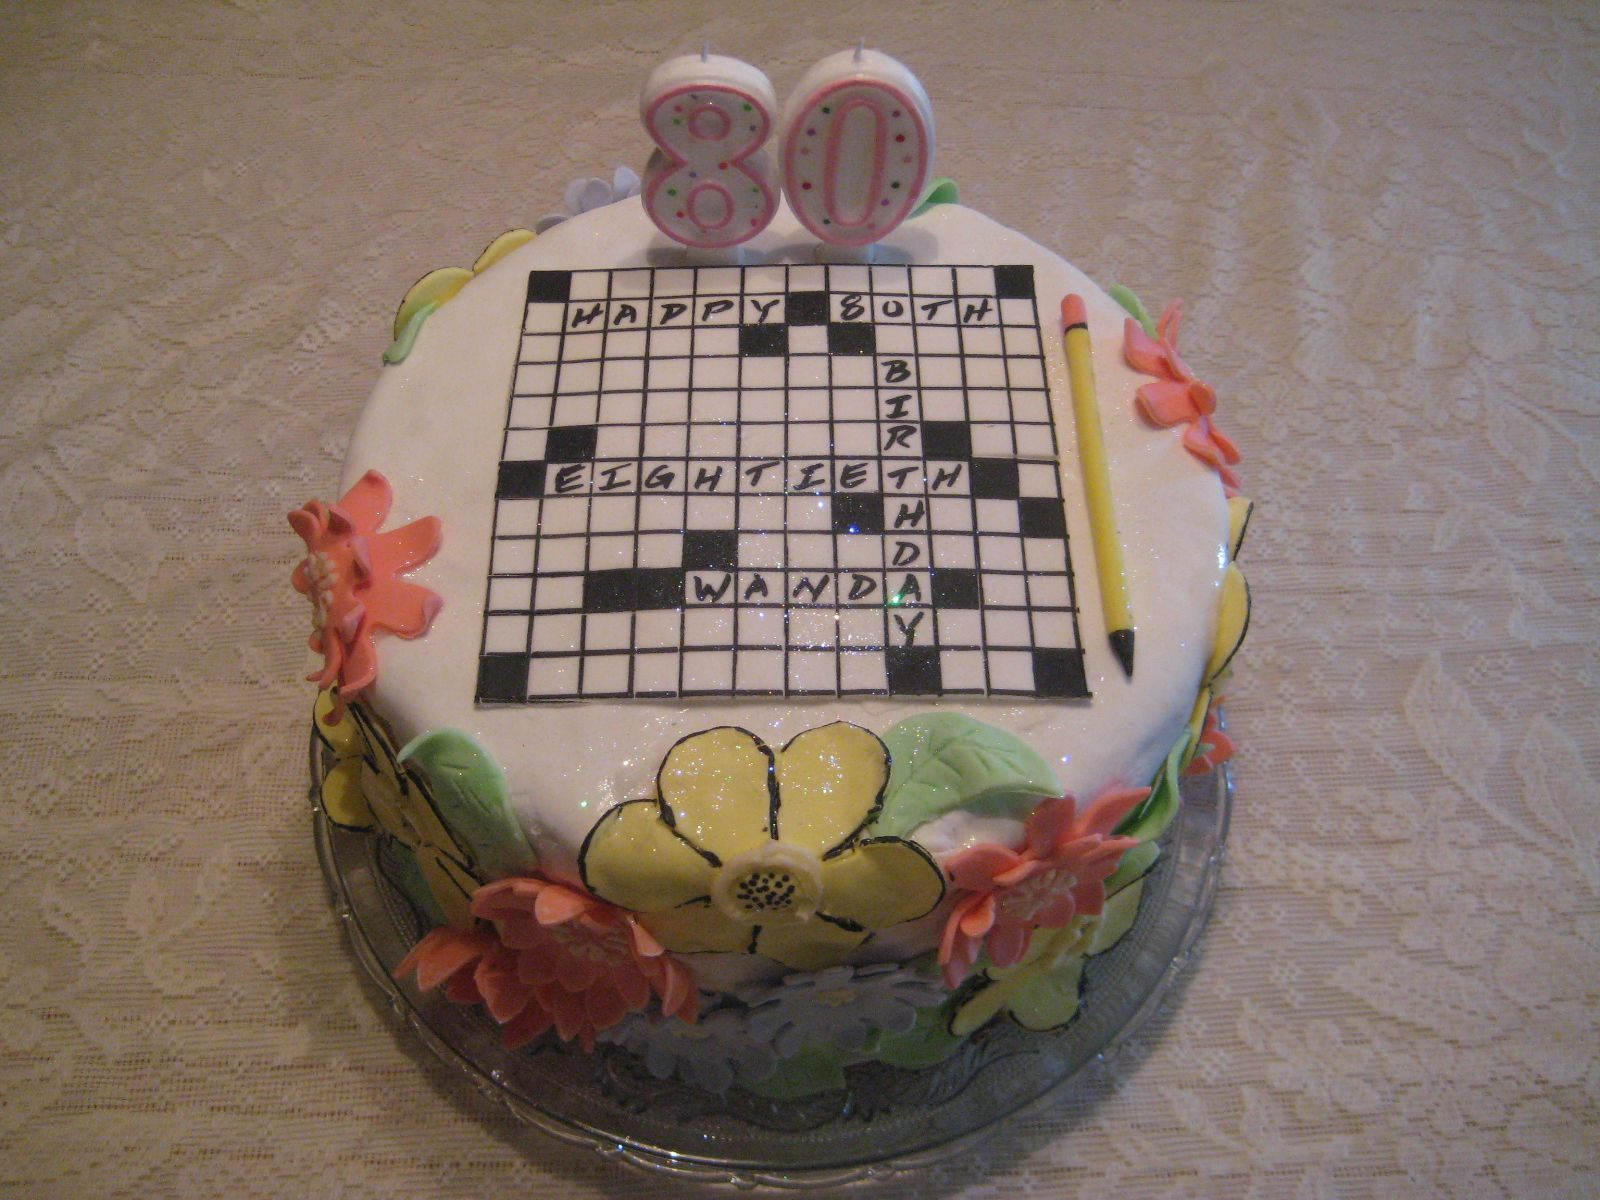 Original OOAK Crossword Puzzle Cake using edible marker for black puzzle lines. etc... and homemade marshmallow fondant!!  made this for my mom.